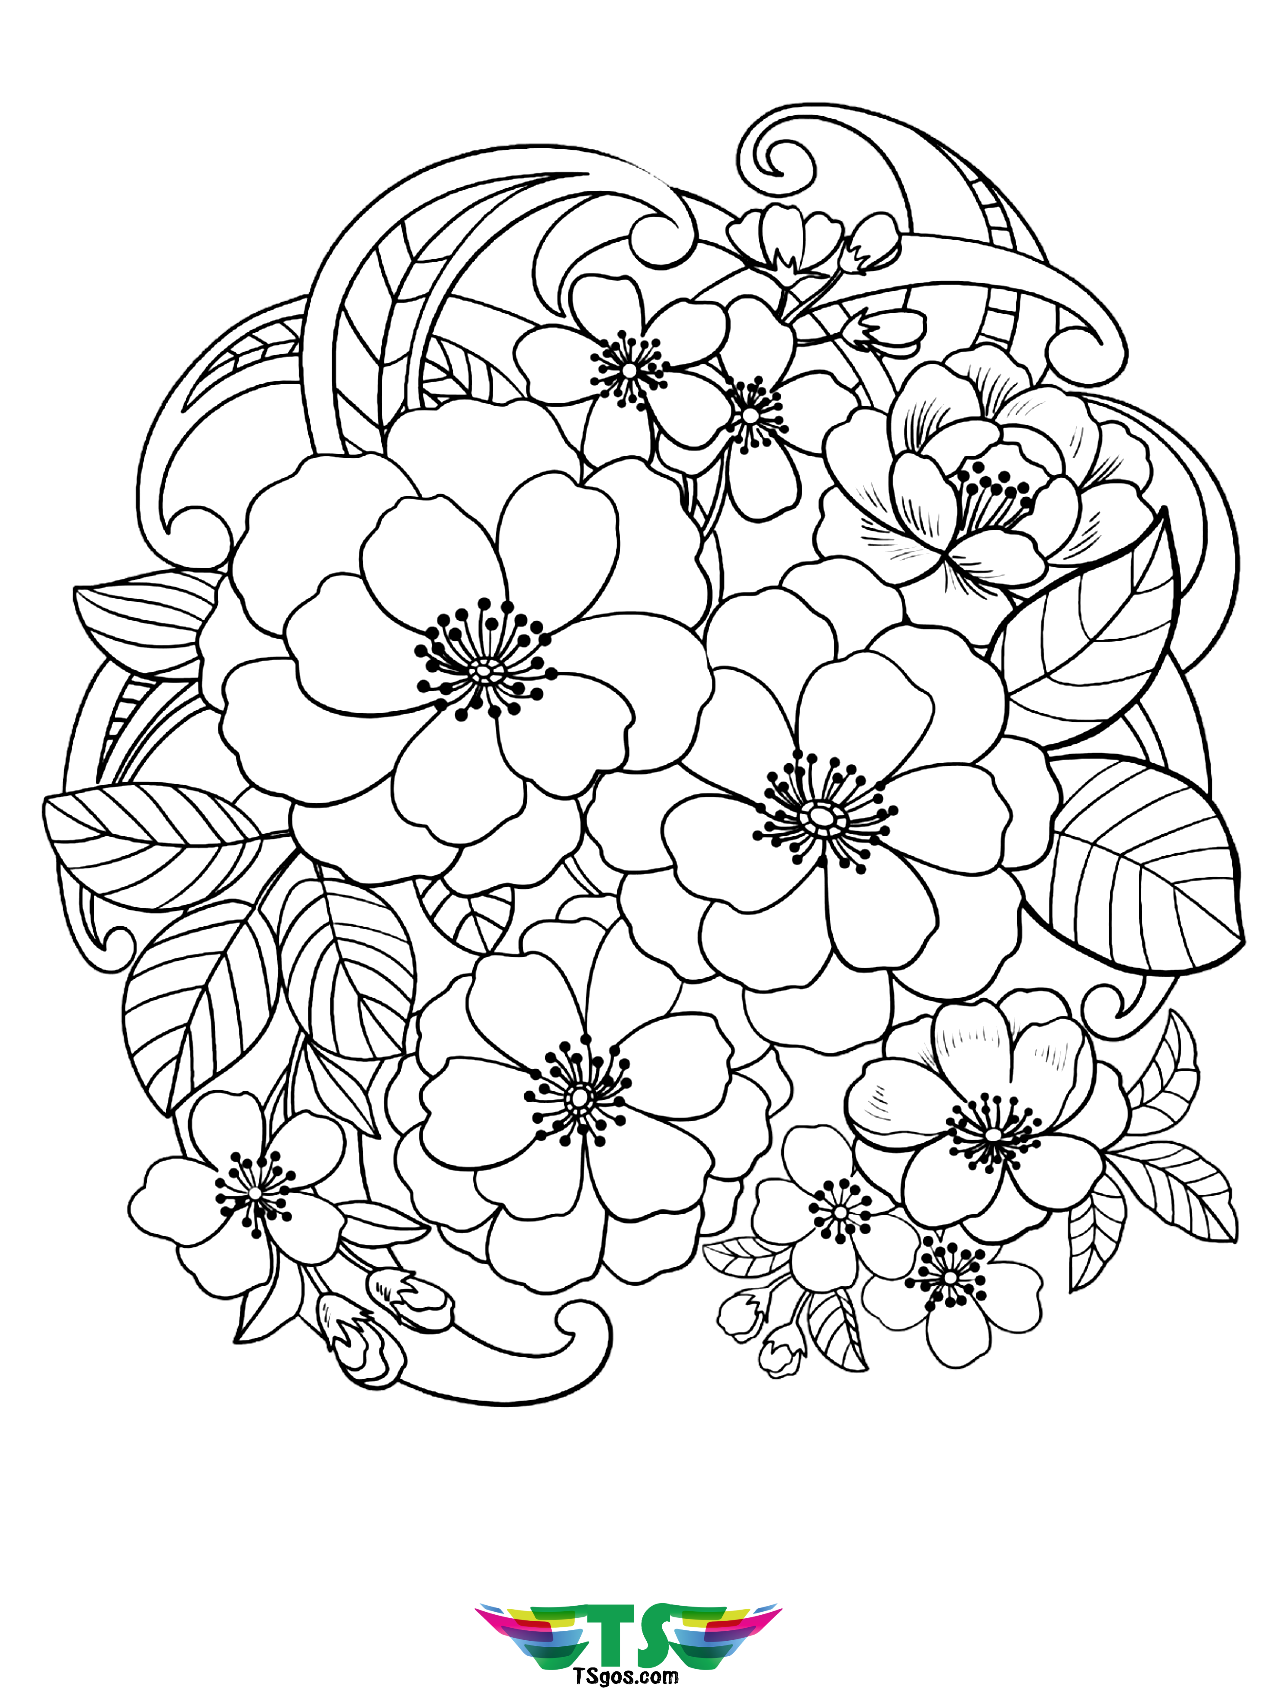 coloring pics of flowers free printable flower coloring pages for kids best coloring flowers of pics